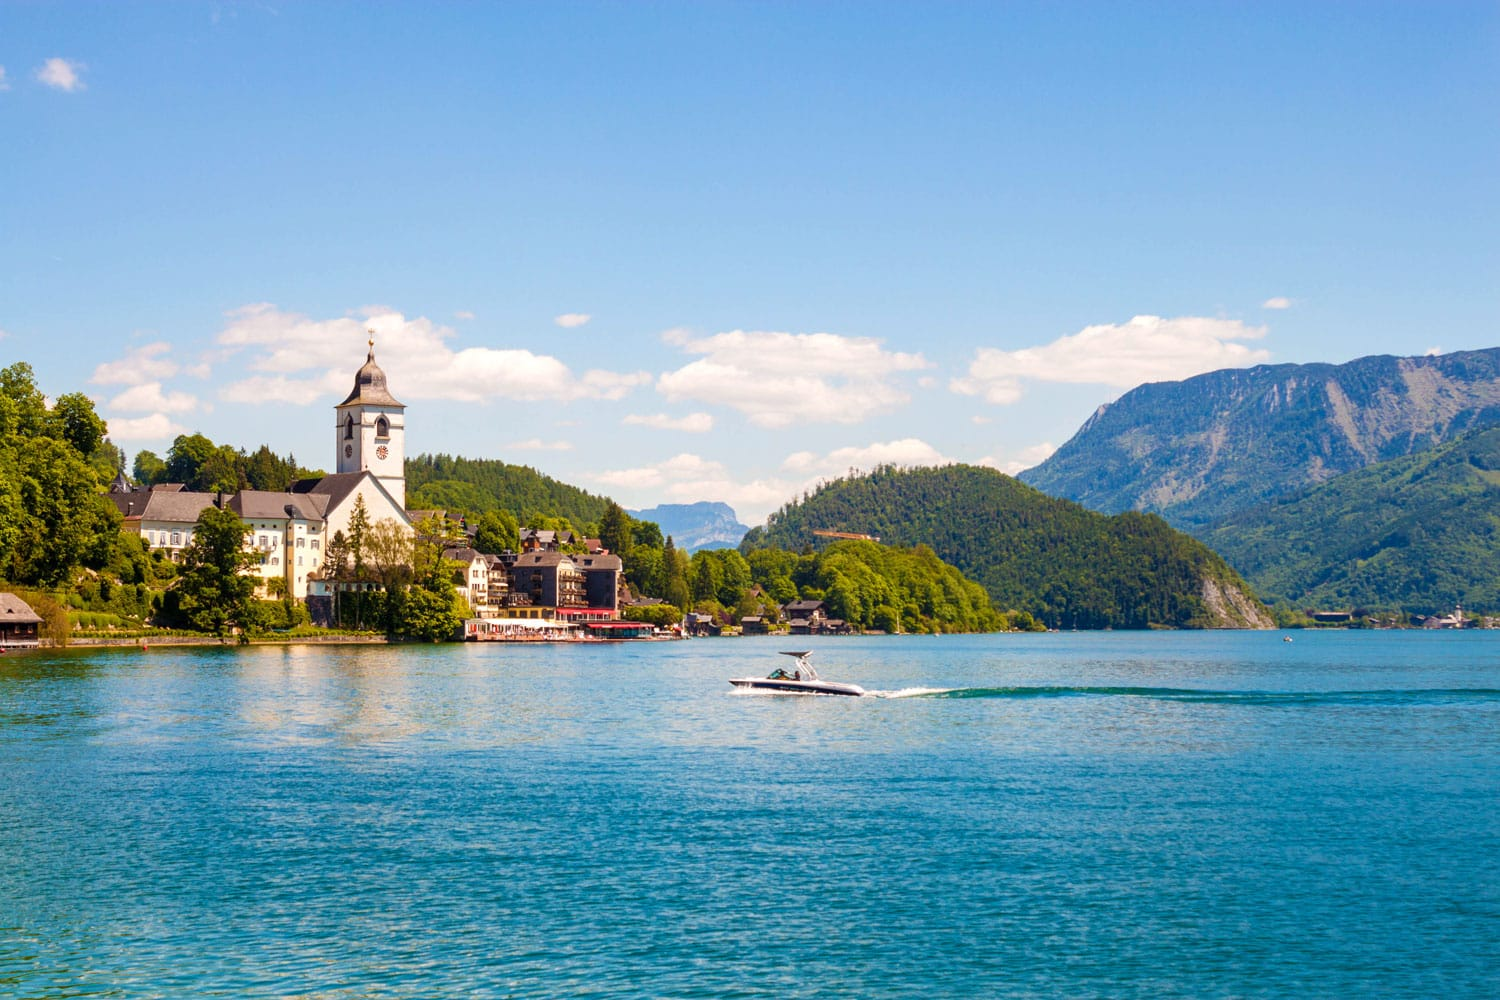 View of St. Wolfgang chapel and the village of St. Wolfgang at Wolfgangsee lake, Austria